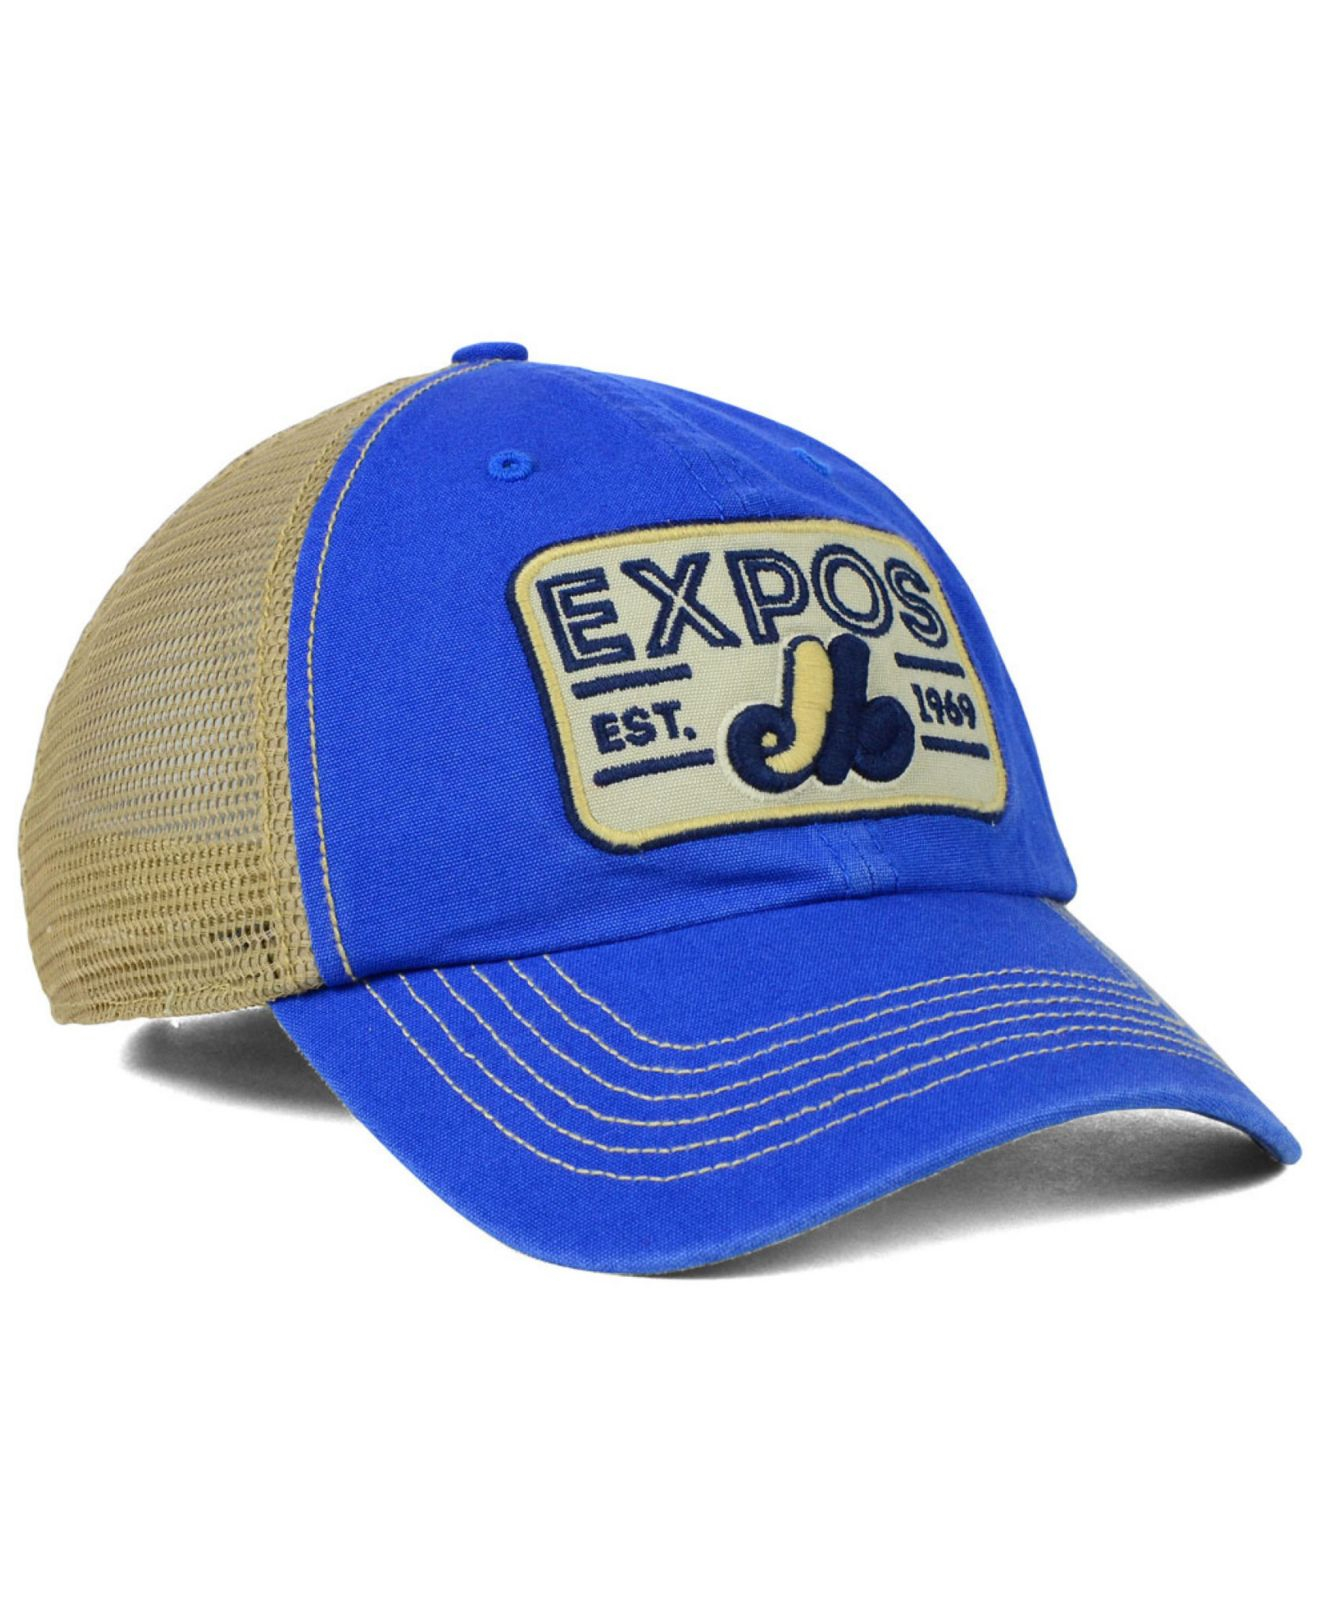 Lyst - 47 Brand Montreal Expos Goin Yard Mesh Cap in Blue for Men acb685396a7